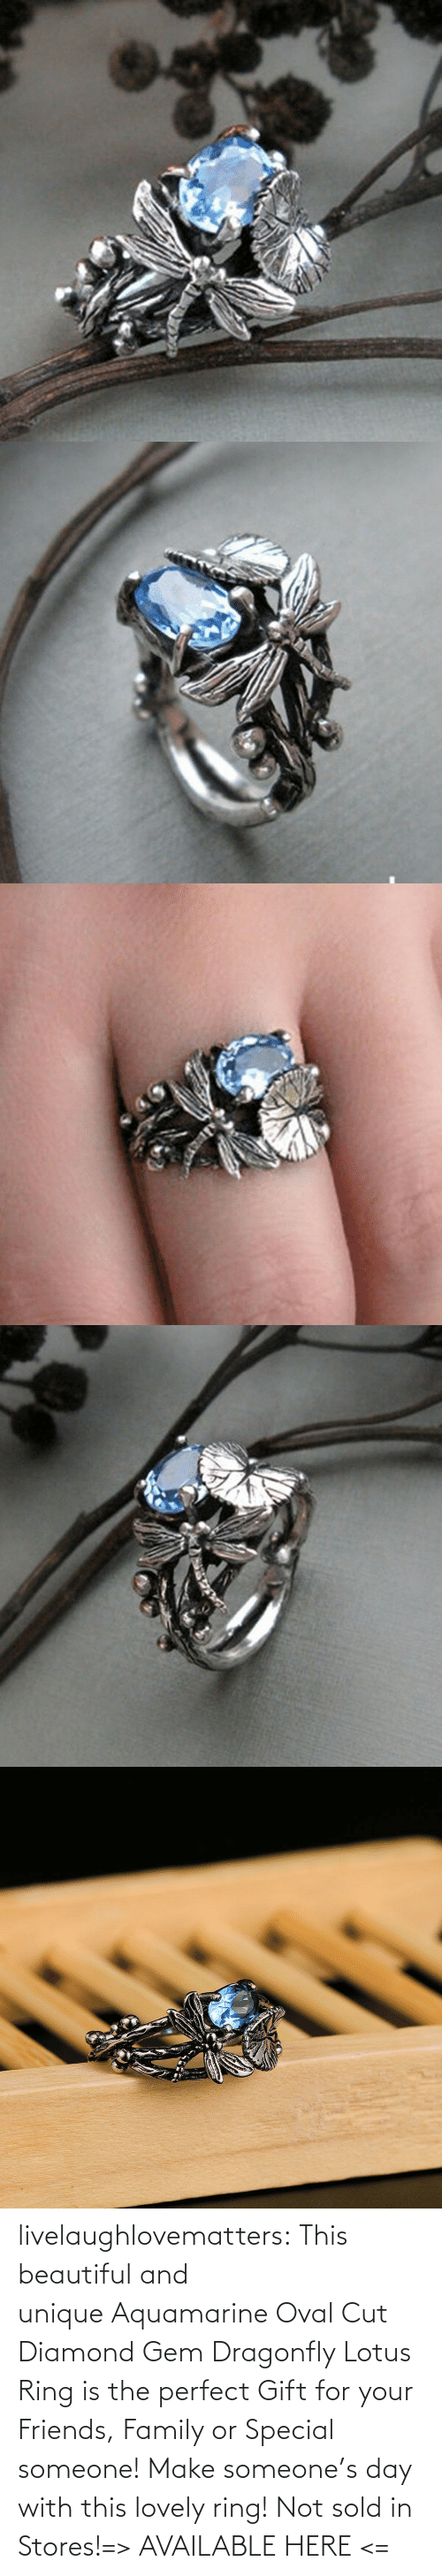 Sold: livelaughlovematters:  This beautiful and unique Aquamarine Oval Cut Diamond Gem Dragonfly Lotus Ring is the perfect Gift for your Friends, Family or Special someone! Make someone's day with this lovely ring! Not sold in Stores!=> AVAILABLE HERE <=